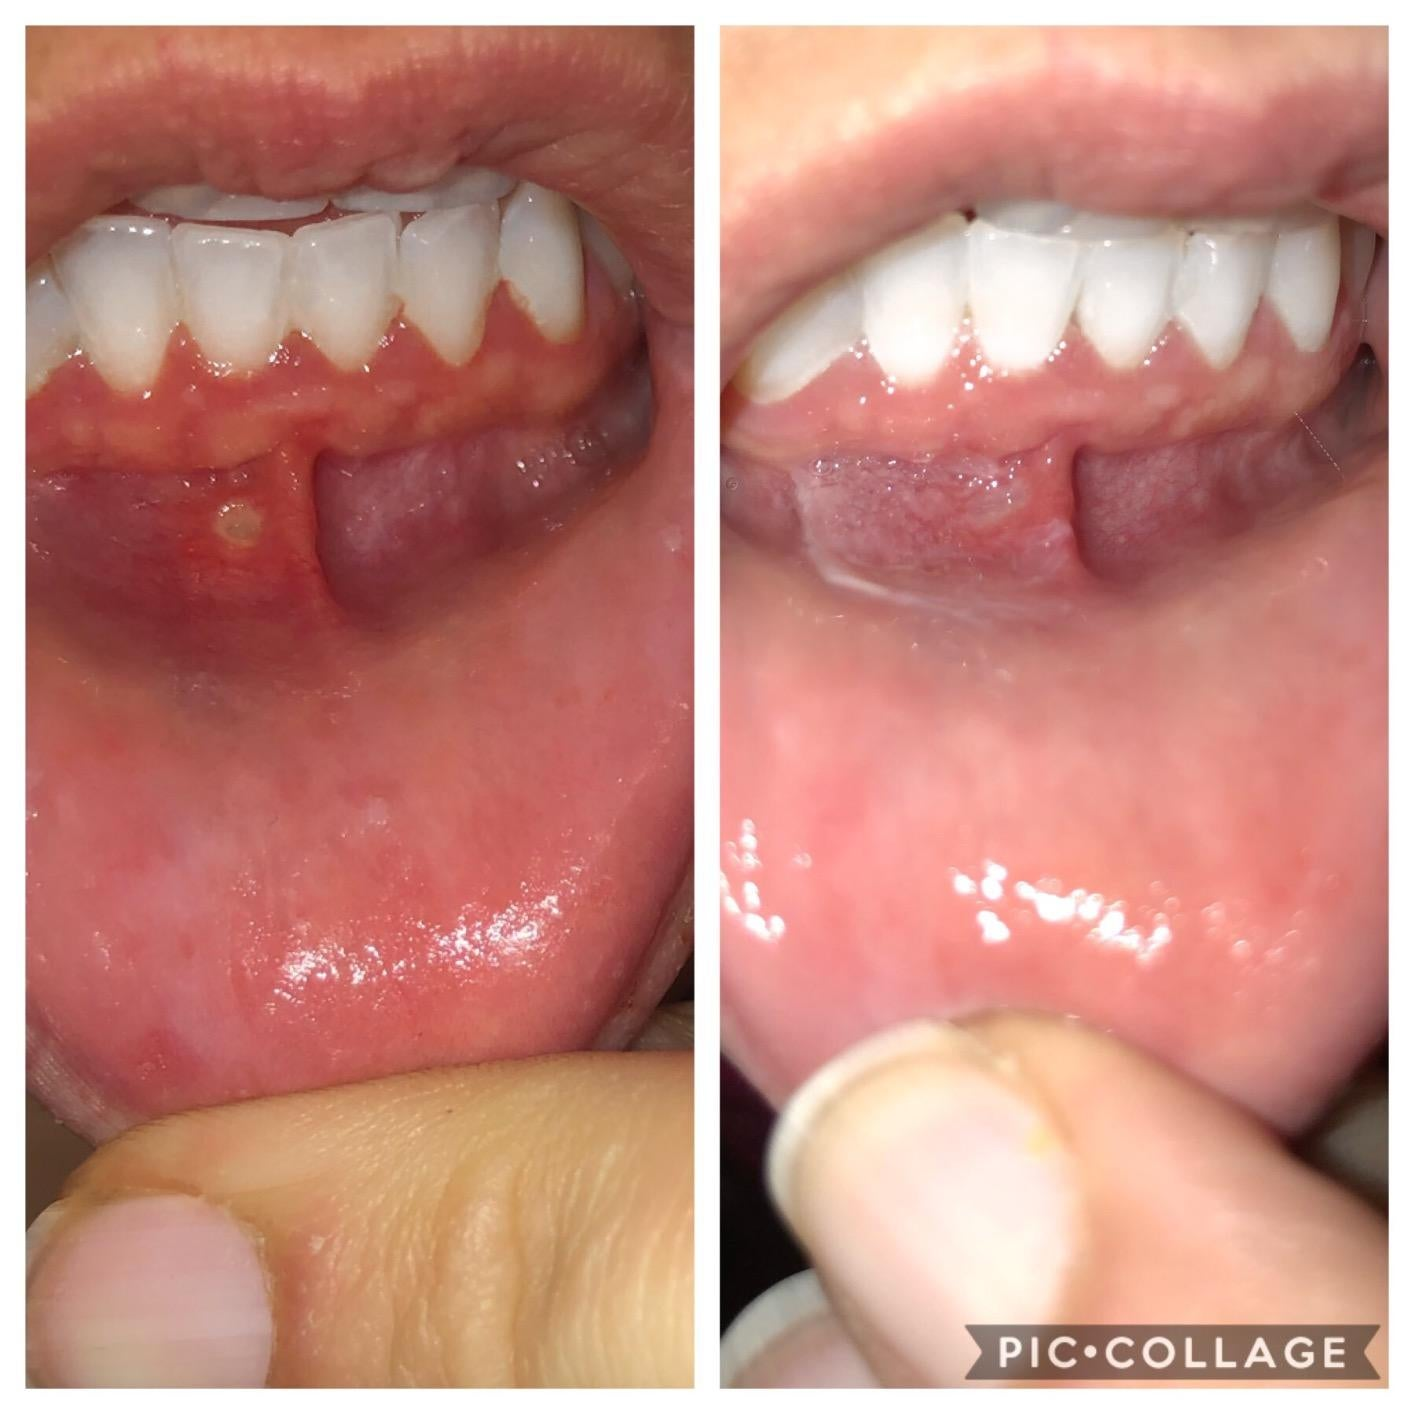 reviewer showing their canker sore and then the sore gone